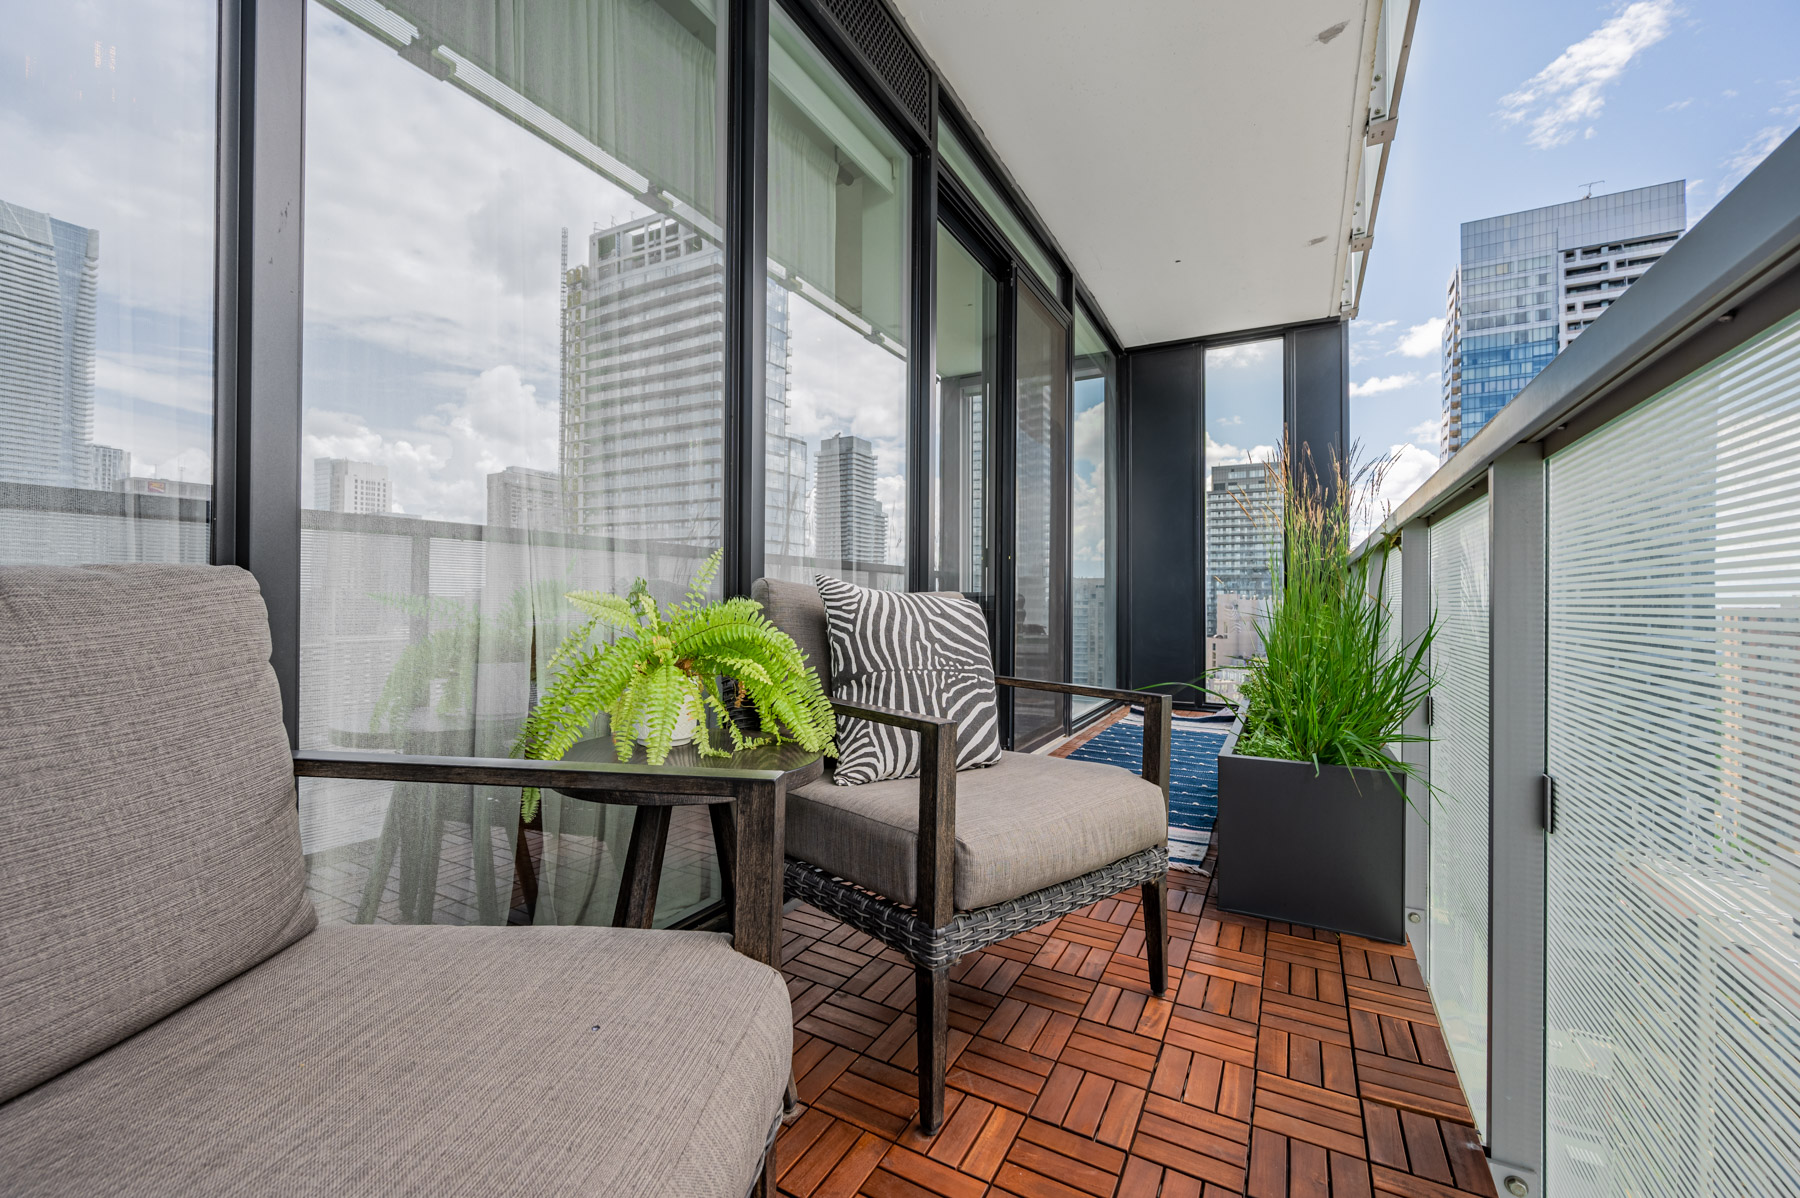 28 Wellesley St Unit 3009 balcony with parquet floors and furniture.